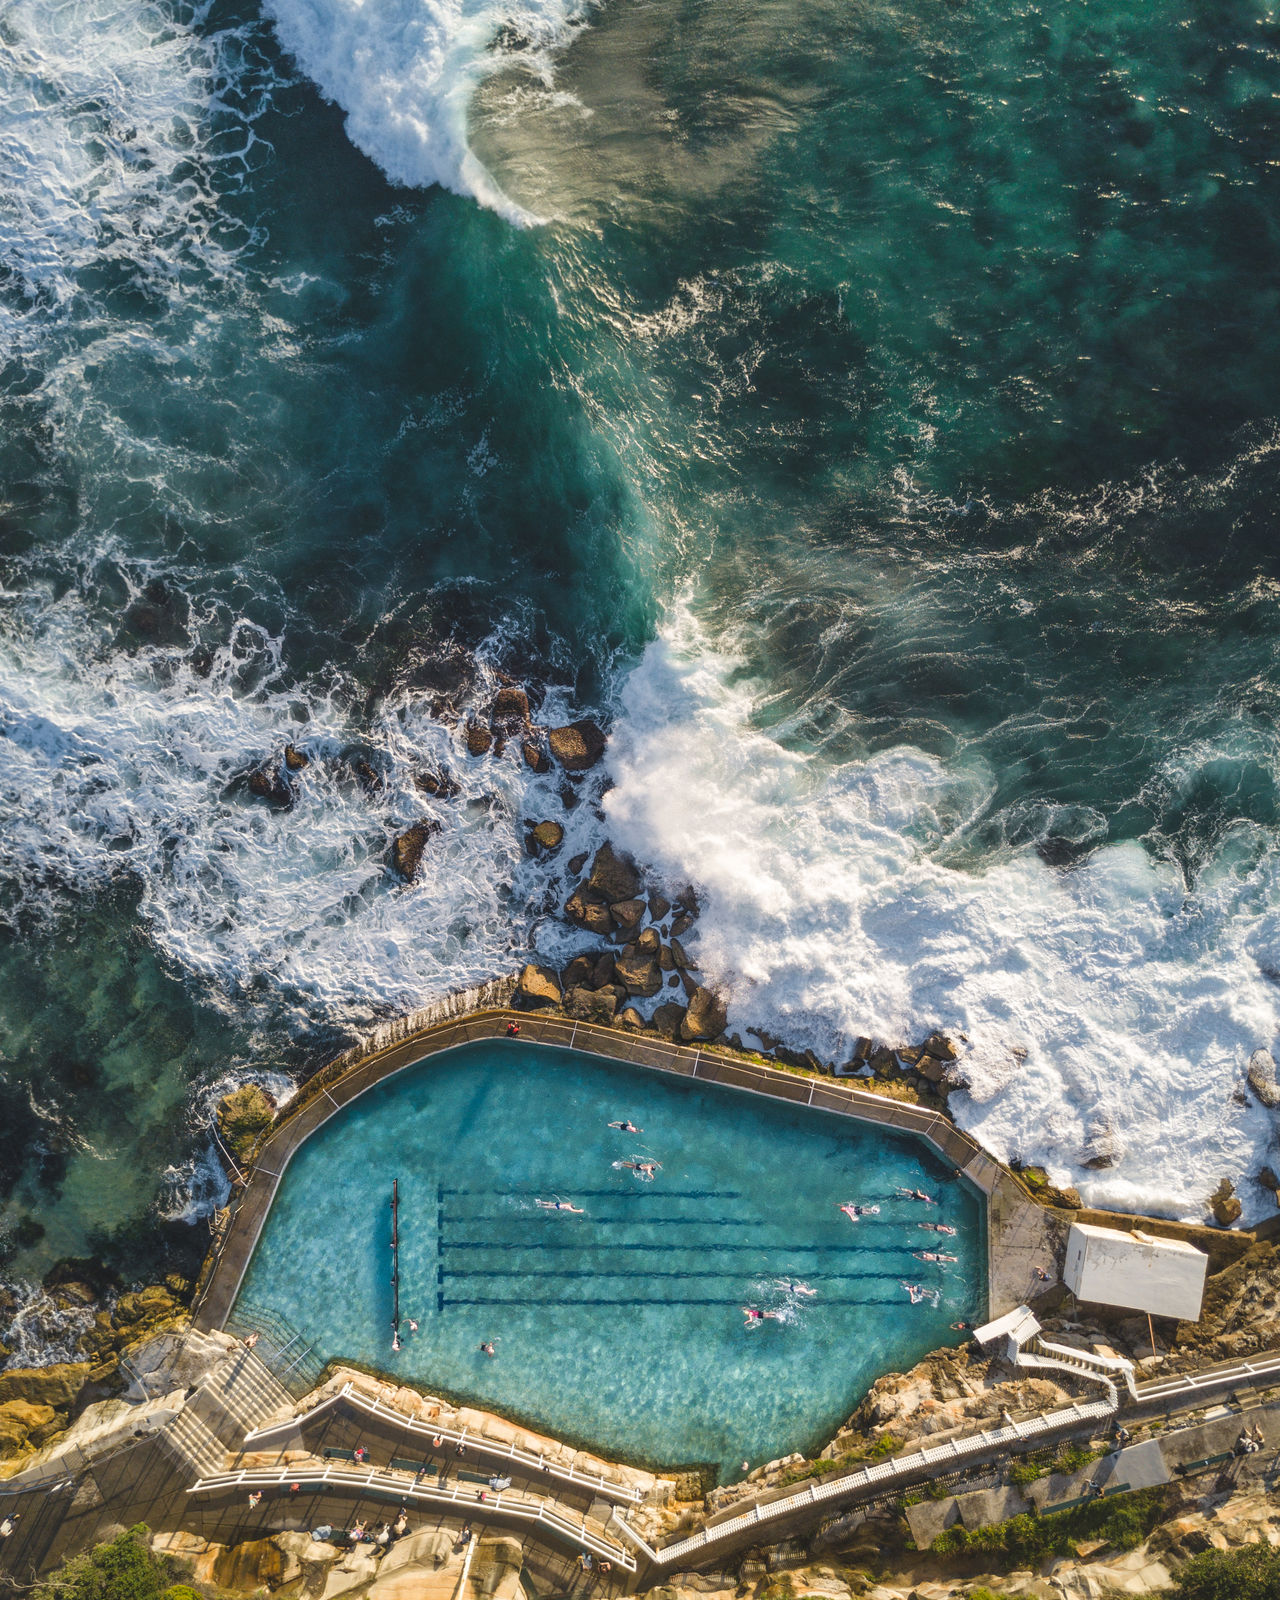 @itchban / www.itchban.com Architecture Beach Beauty In Nature Building Exterior Day High Angle View Nature No People Outdoors Rock Pool Sea Swimming Pool Tidal Pool Water Wave Fresh on Market 2017 The Great Outdoors - 2017 EyeEm Awards Live For The Story